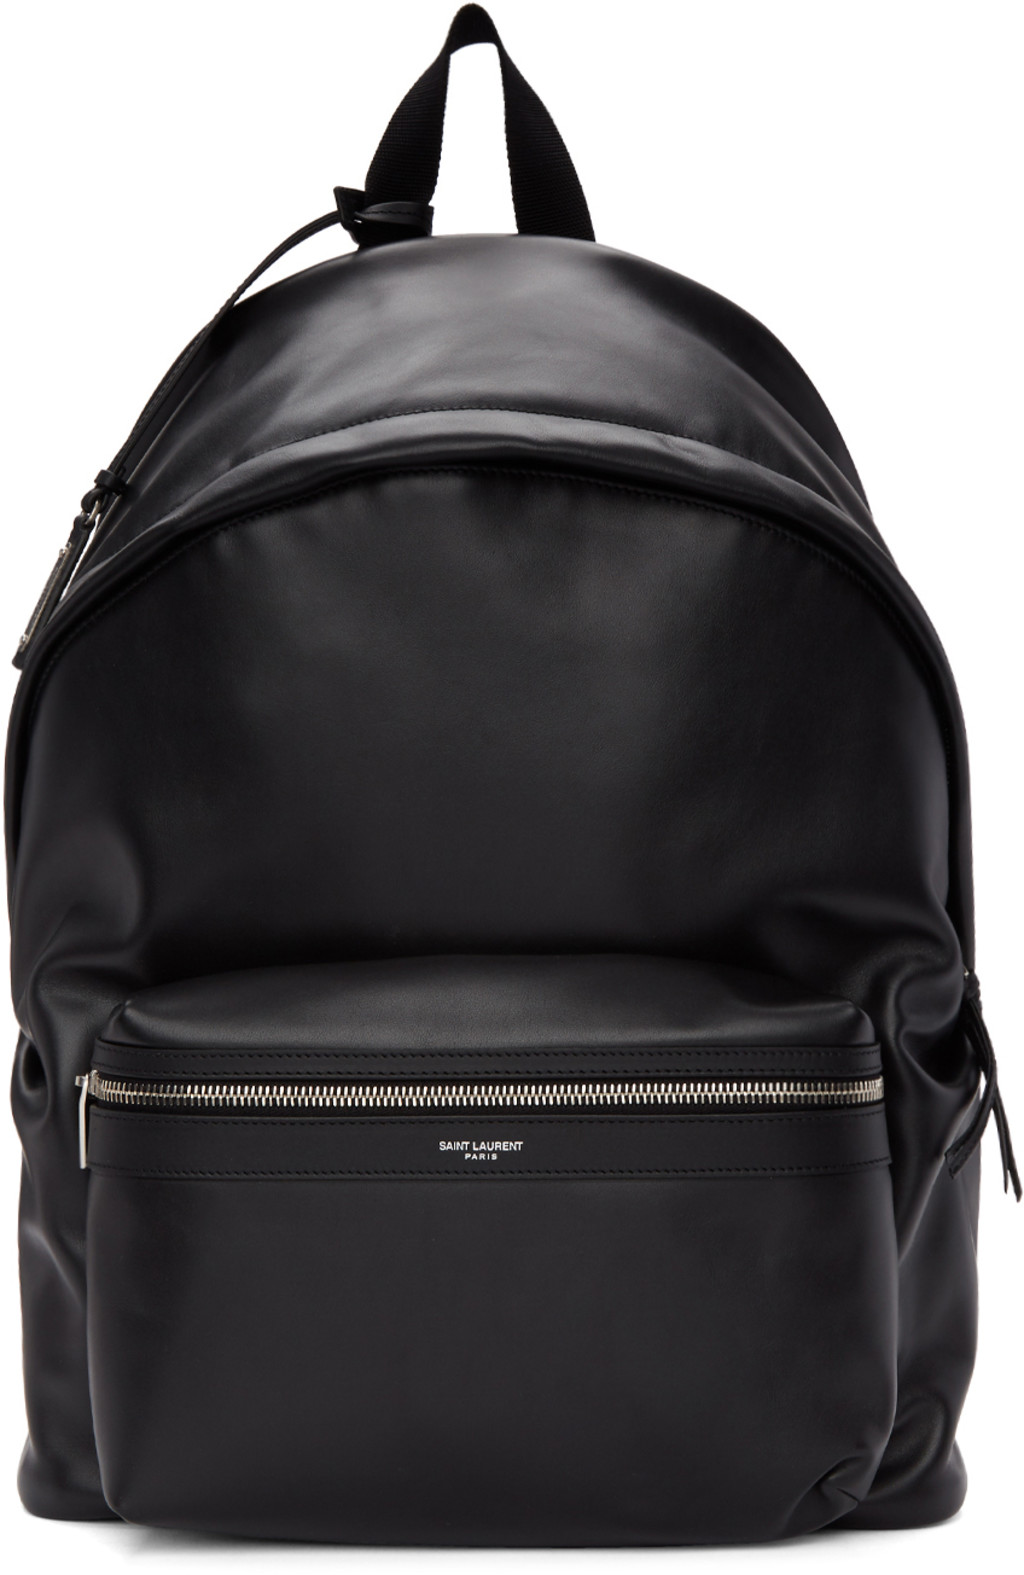 3c46ede3d Black Matte City Backpack